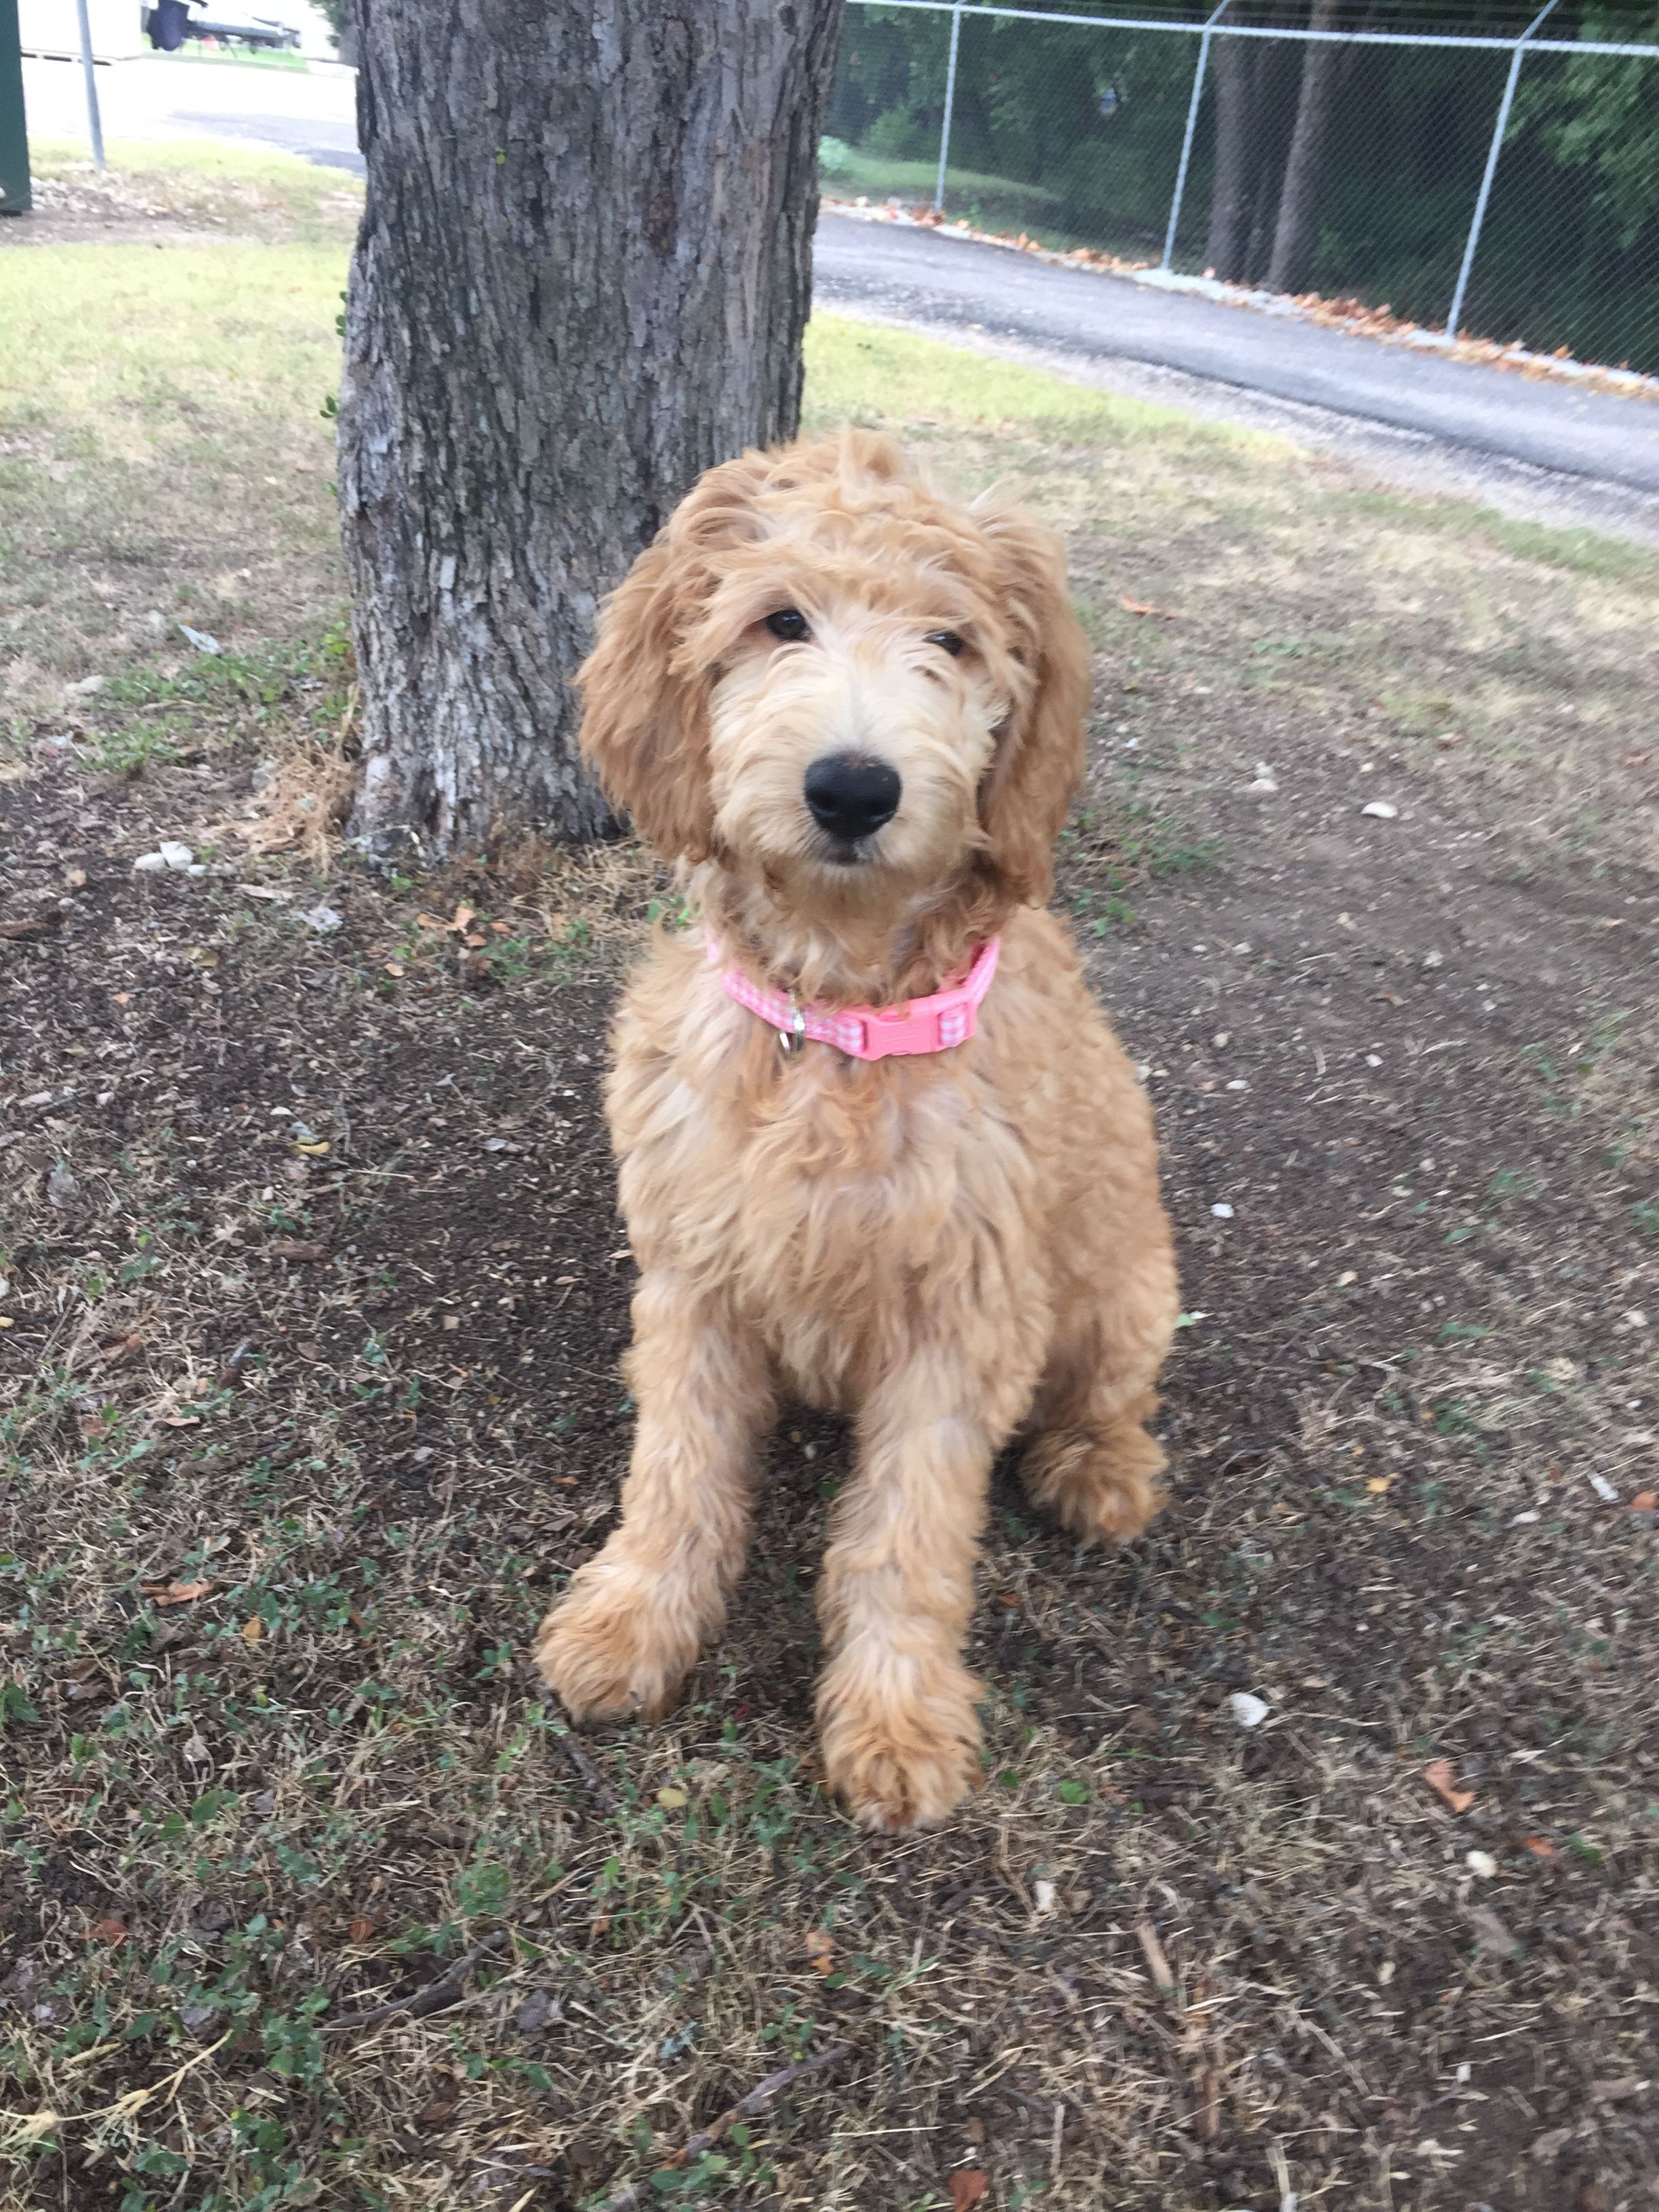 She Is Sooooo Sweat Apricot Goldendoodle About 6 Months Old Apricot Goldendoodle Golden Retriever Photography Golden Retriever